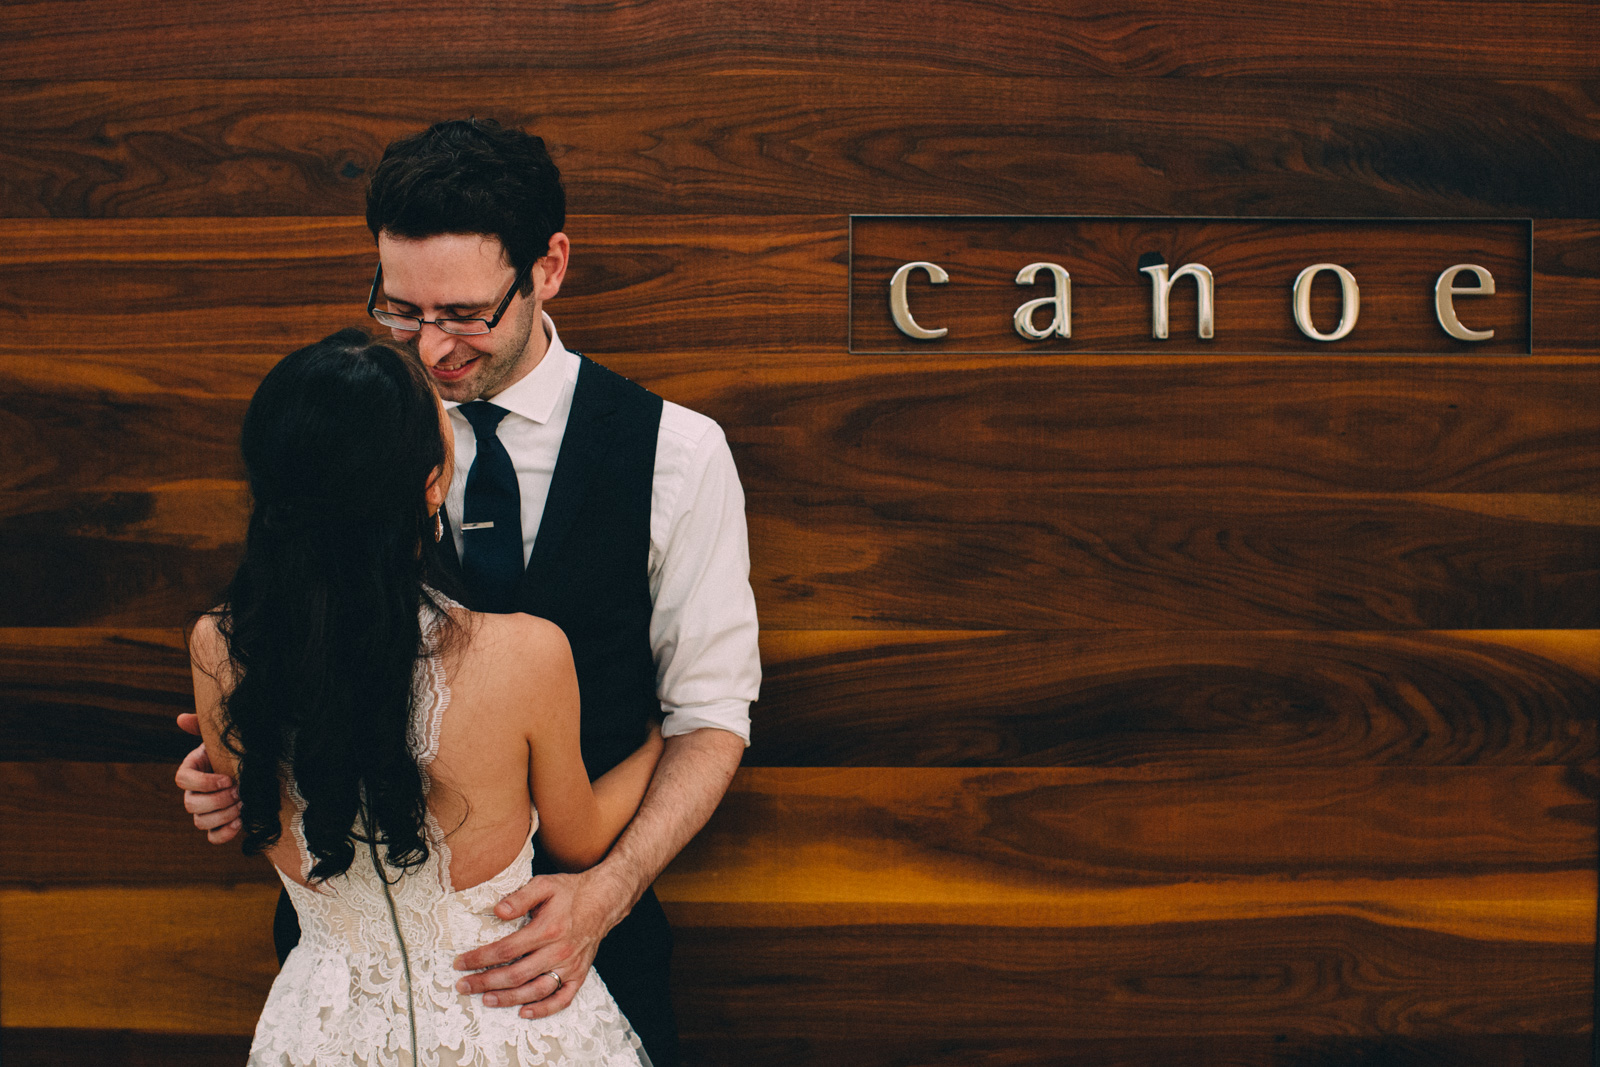 Canoe-Toronto-wedding-photography-JM-by-Sam-Wong-of-visual-cravings_58